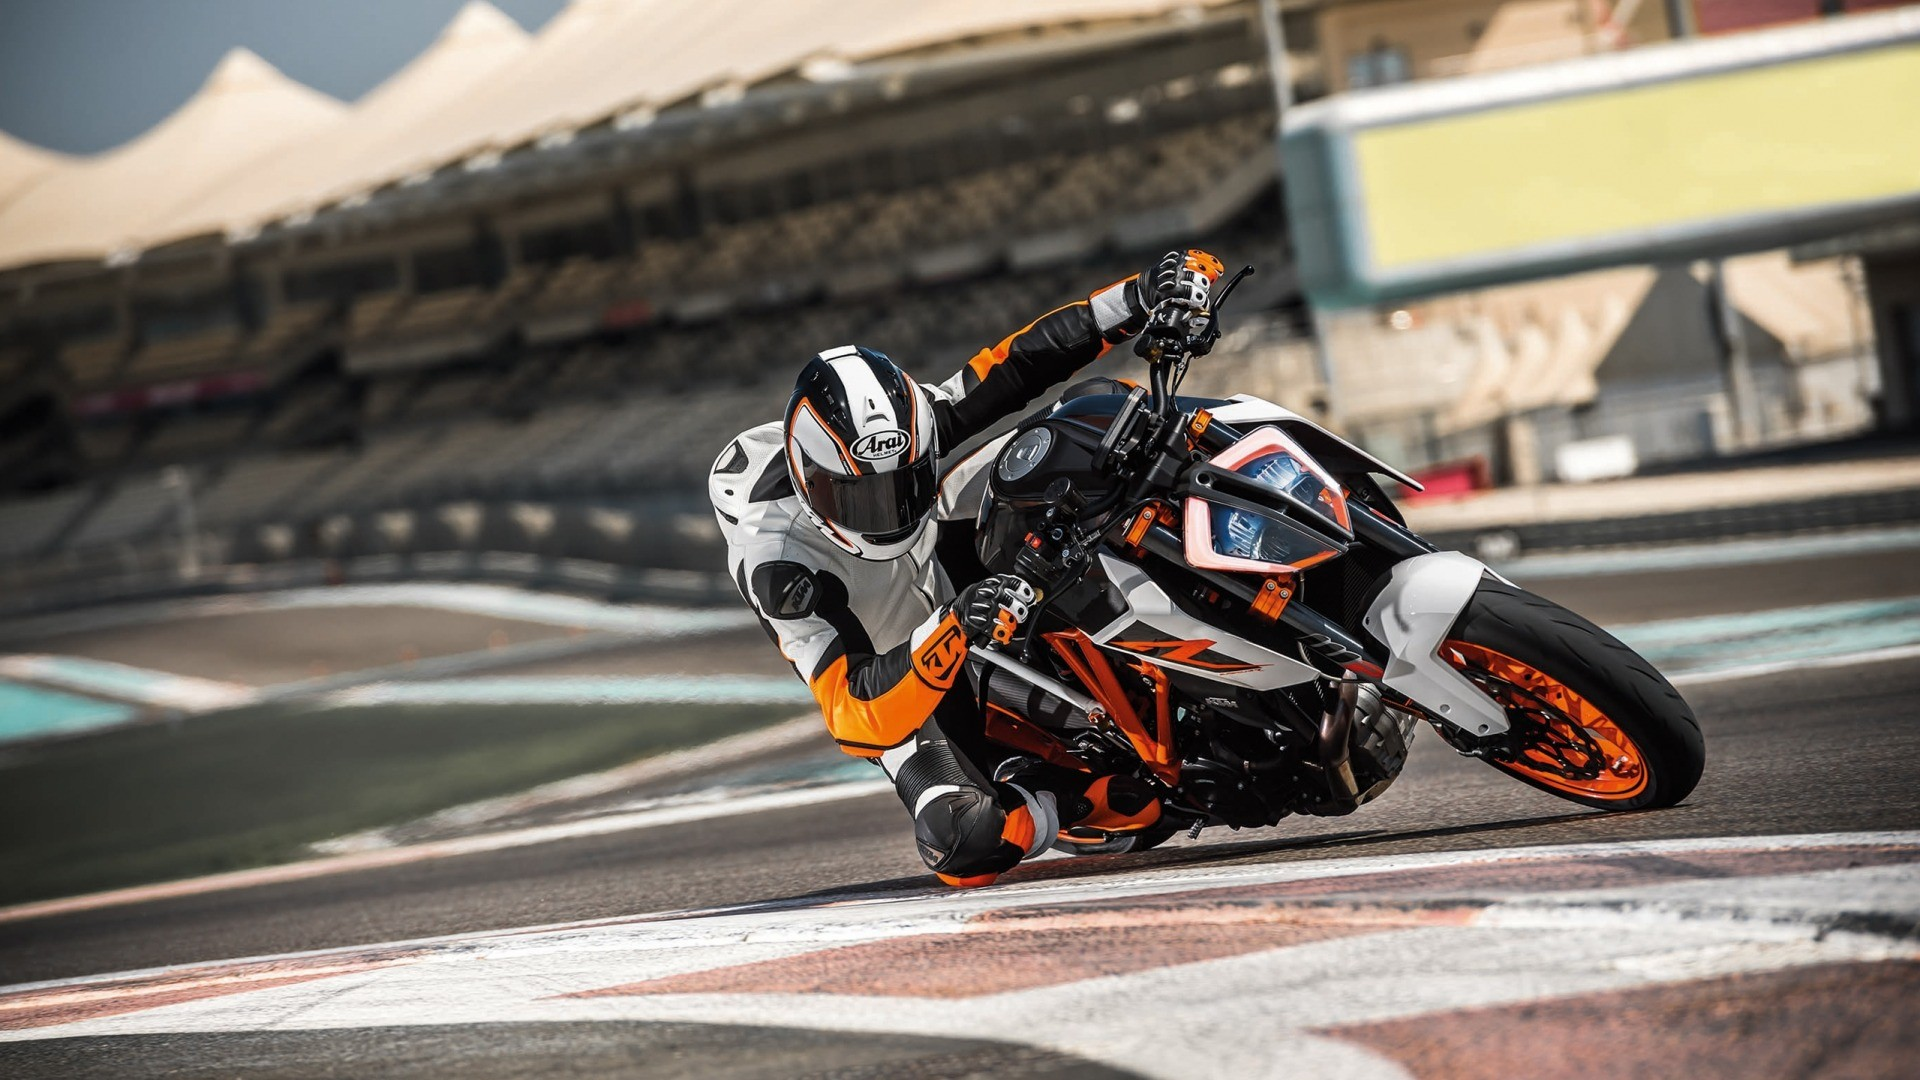 Ktm 1290 Super Duke Hd Wallpaper Iphone 7 Plus Iphone 8